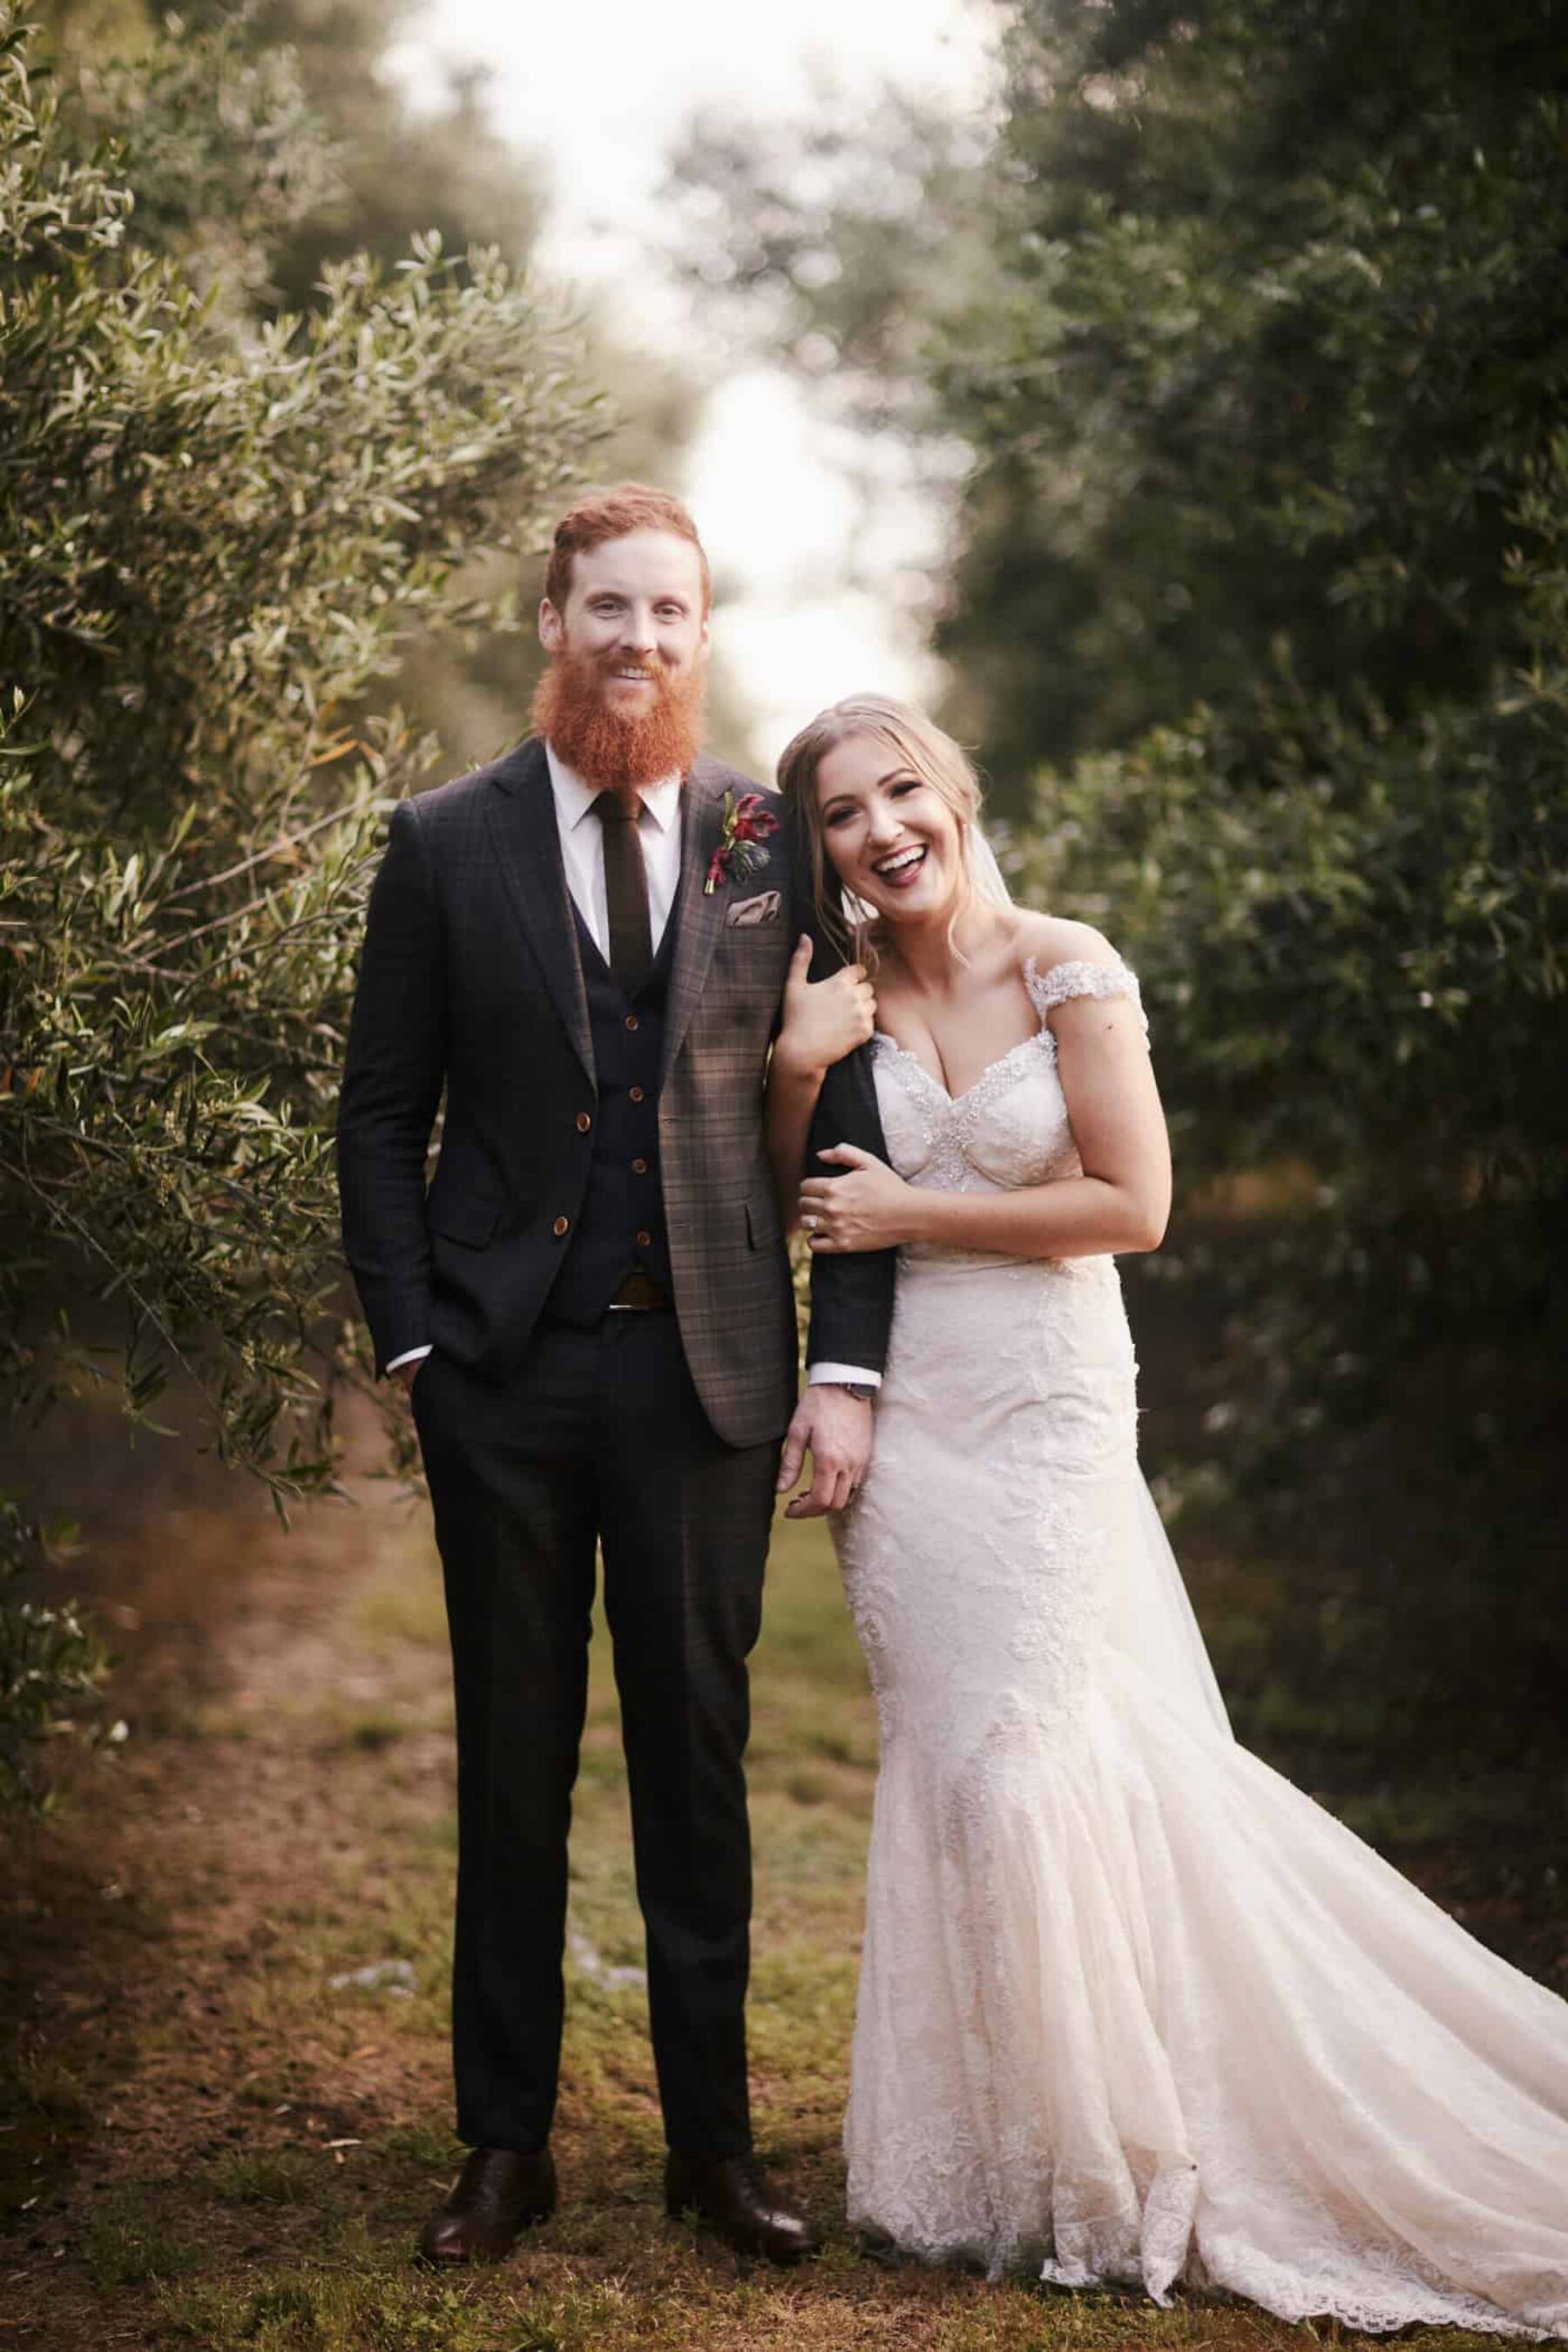 Melbourne wedding photographer Eric Ronald